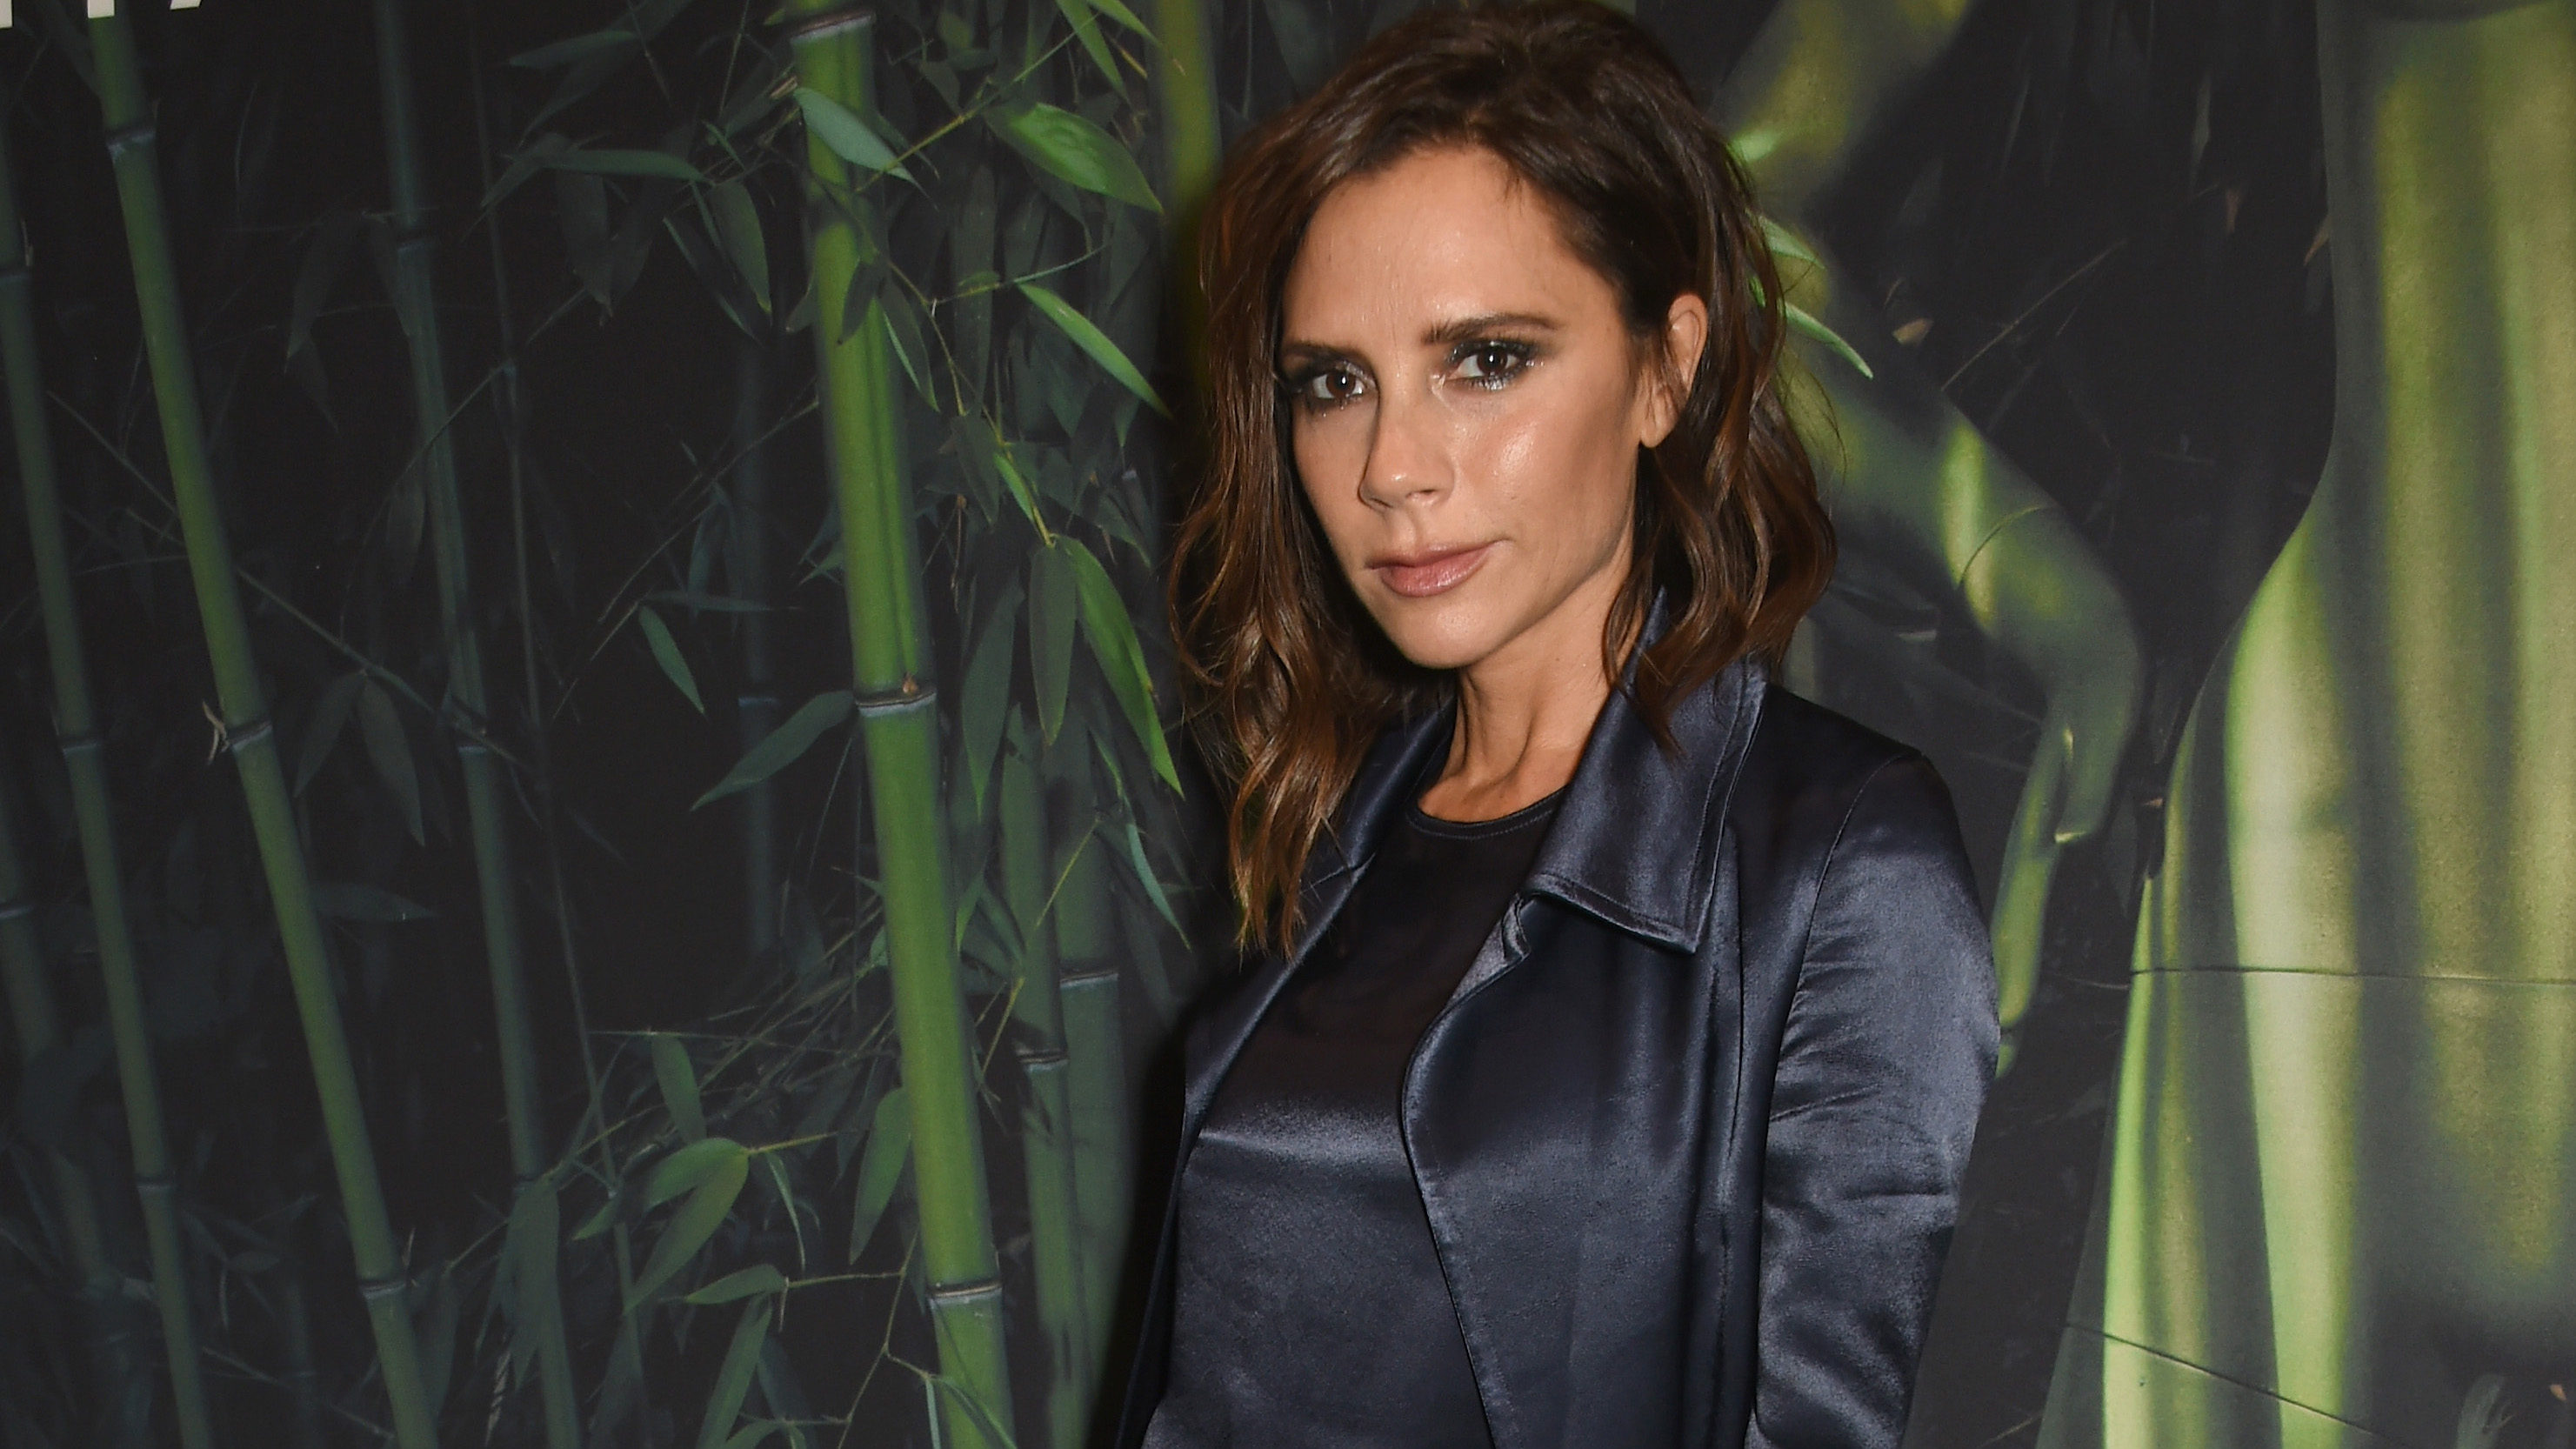 Victoria Beckham to be honoured by the Queen